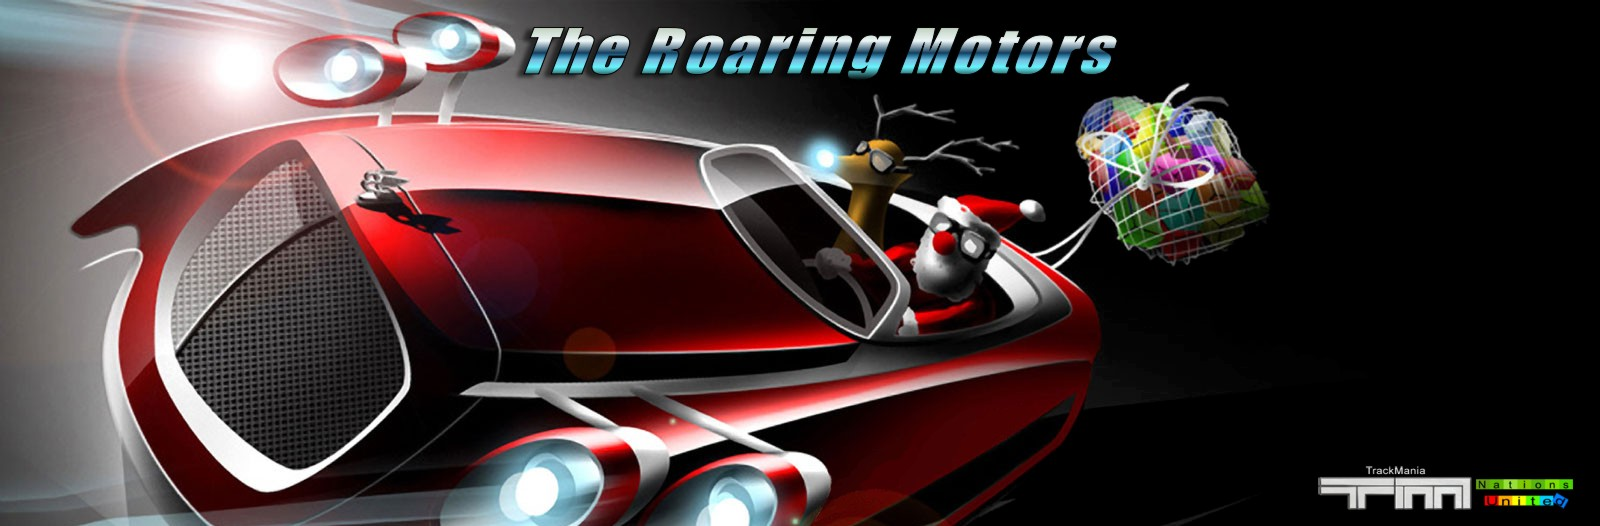 The Roaring Motors Forum Index